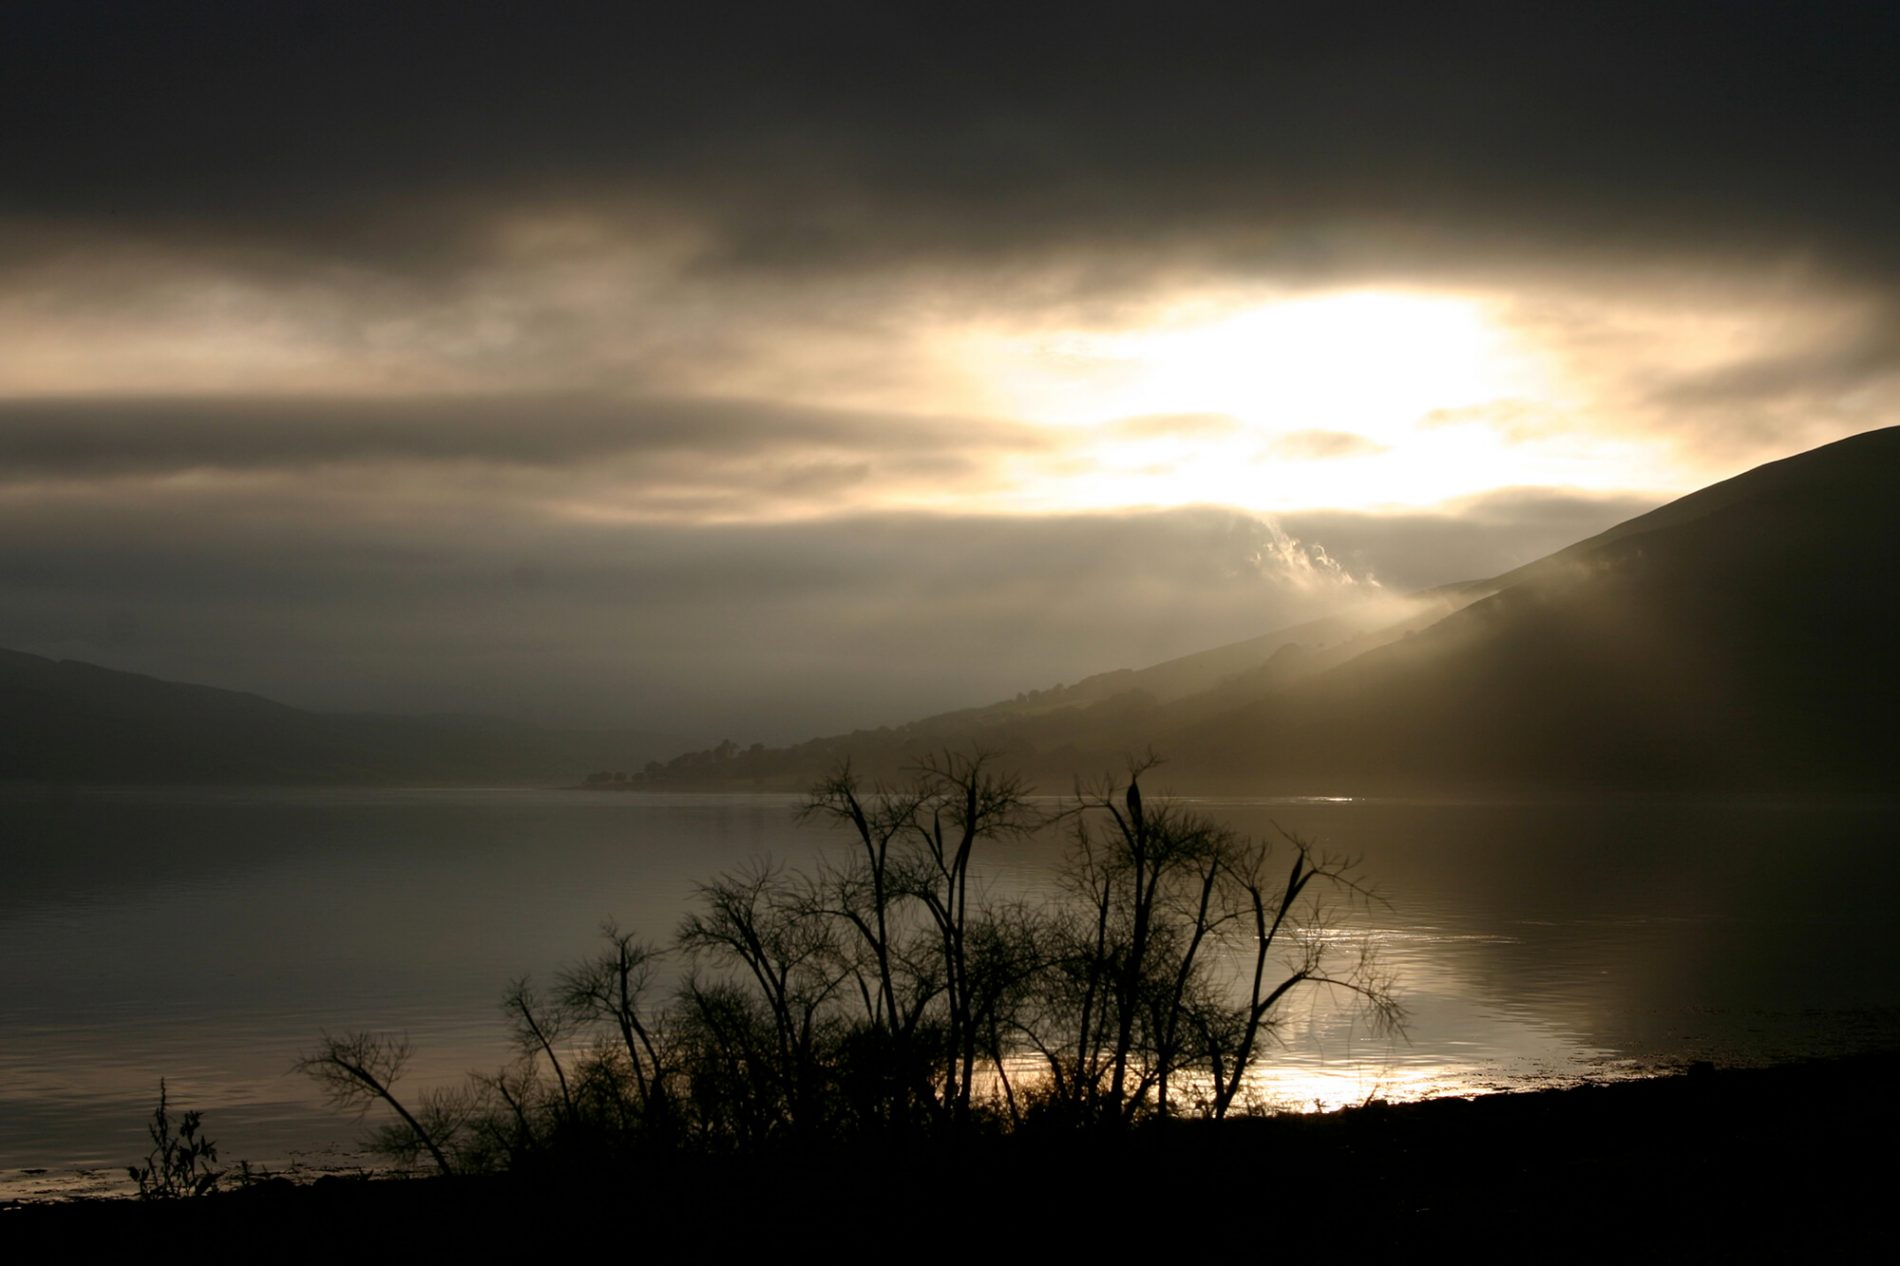 View of the Loch with sunbeams between stormy clouds from Jane Kelly's Studio